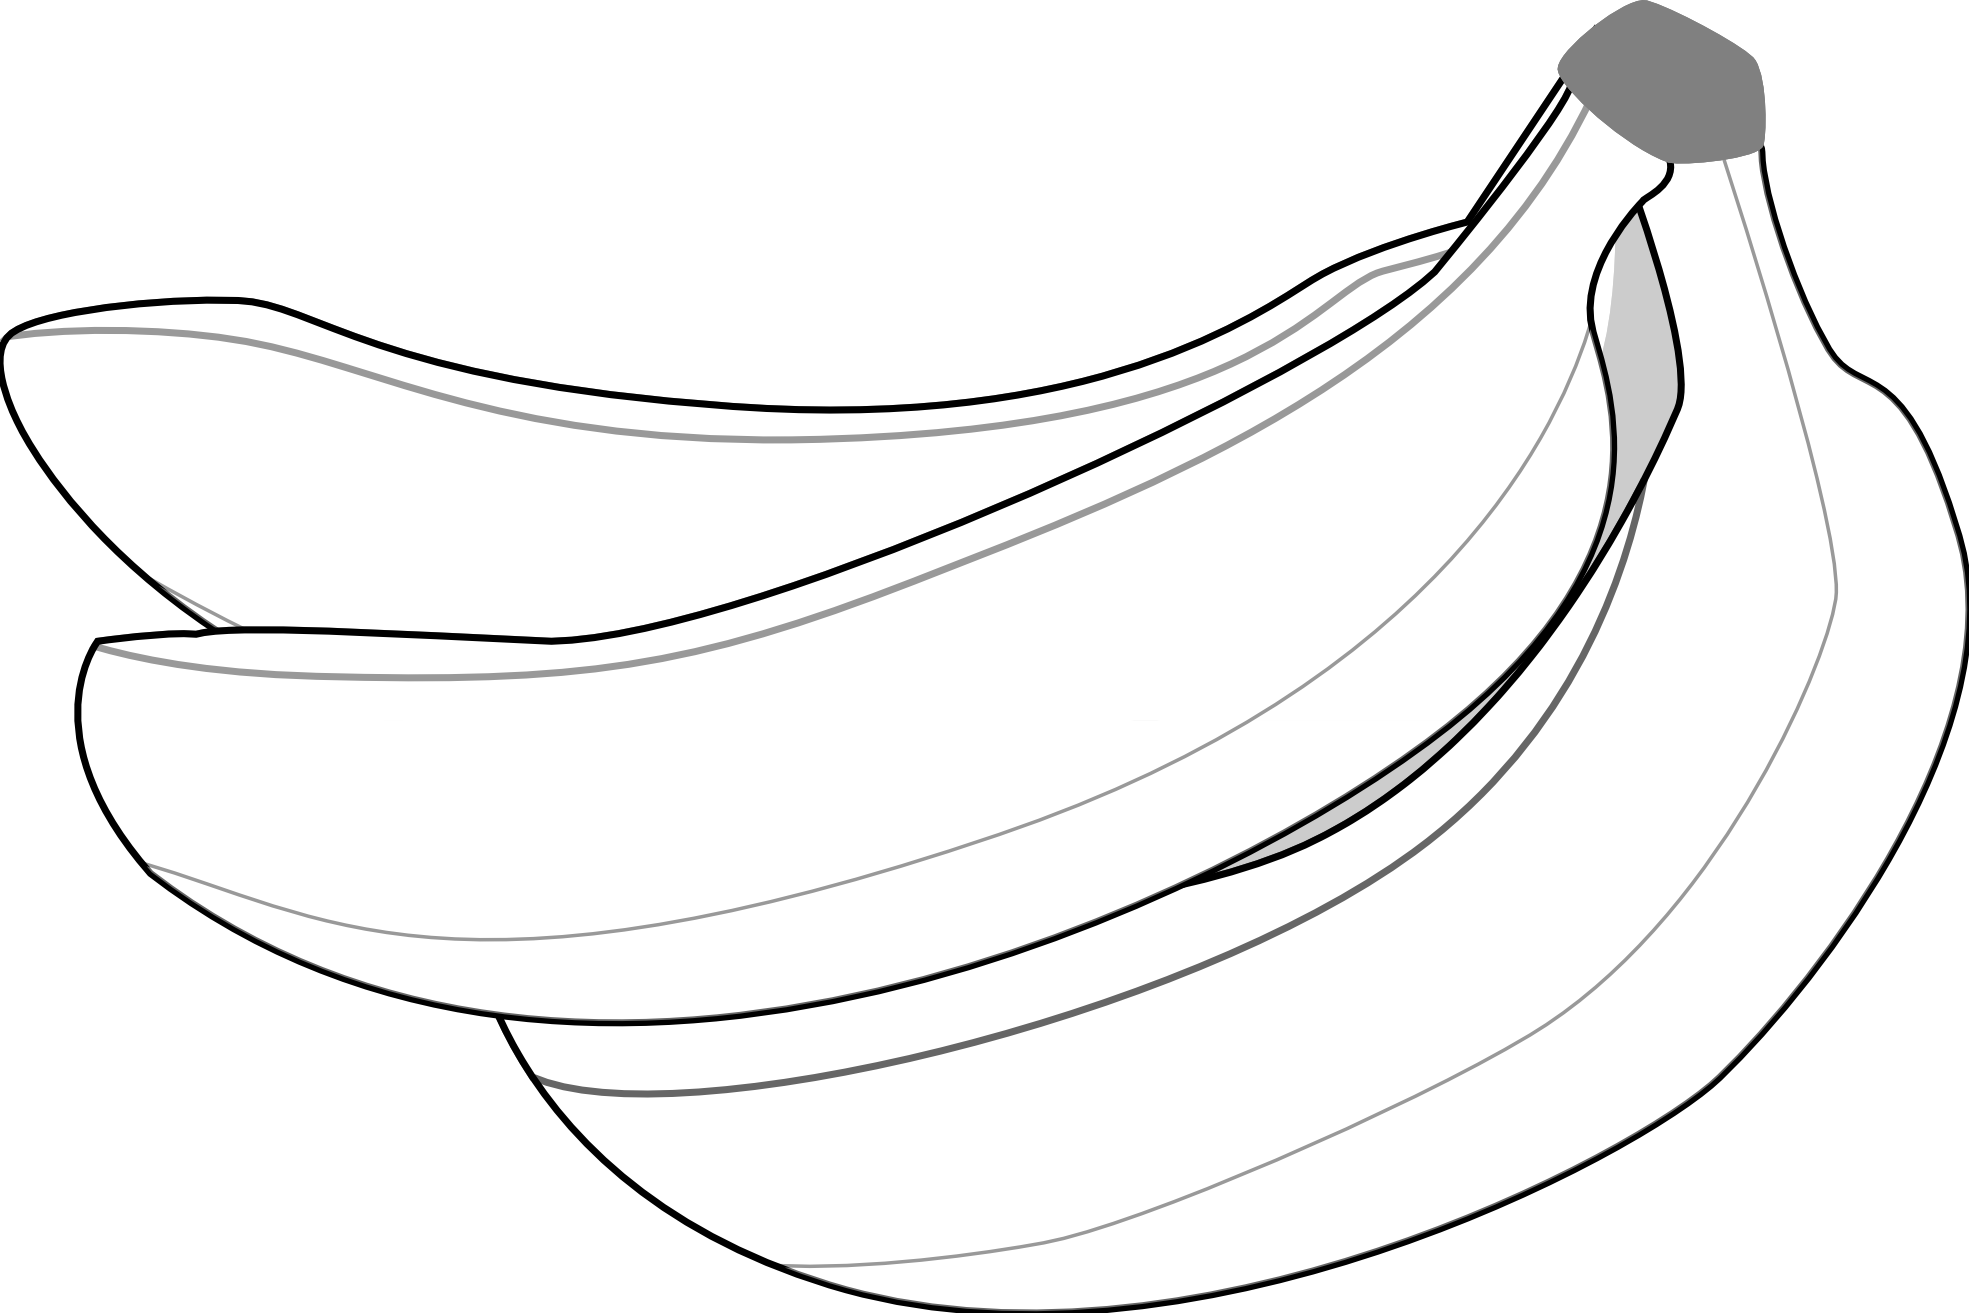 banana%20clipart%20black%20and%20white